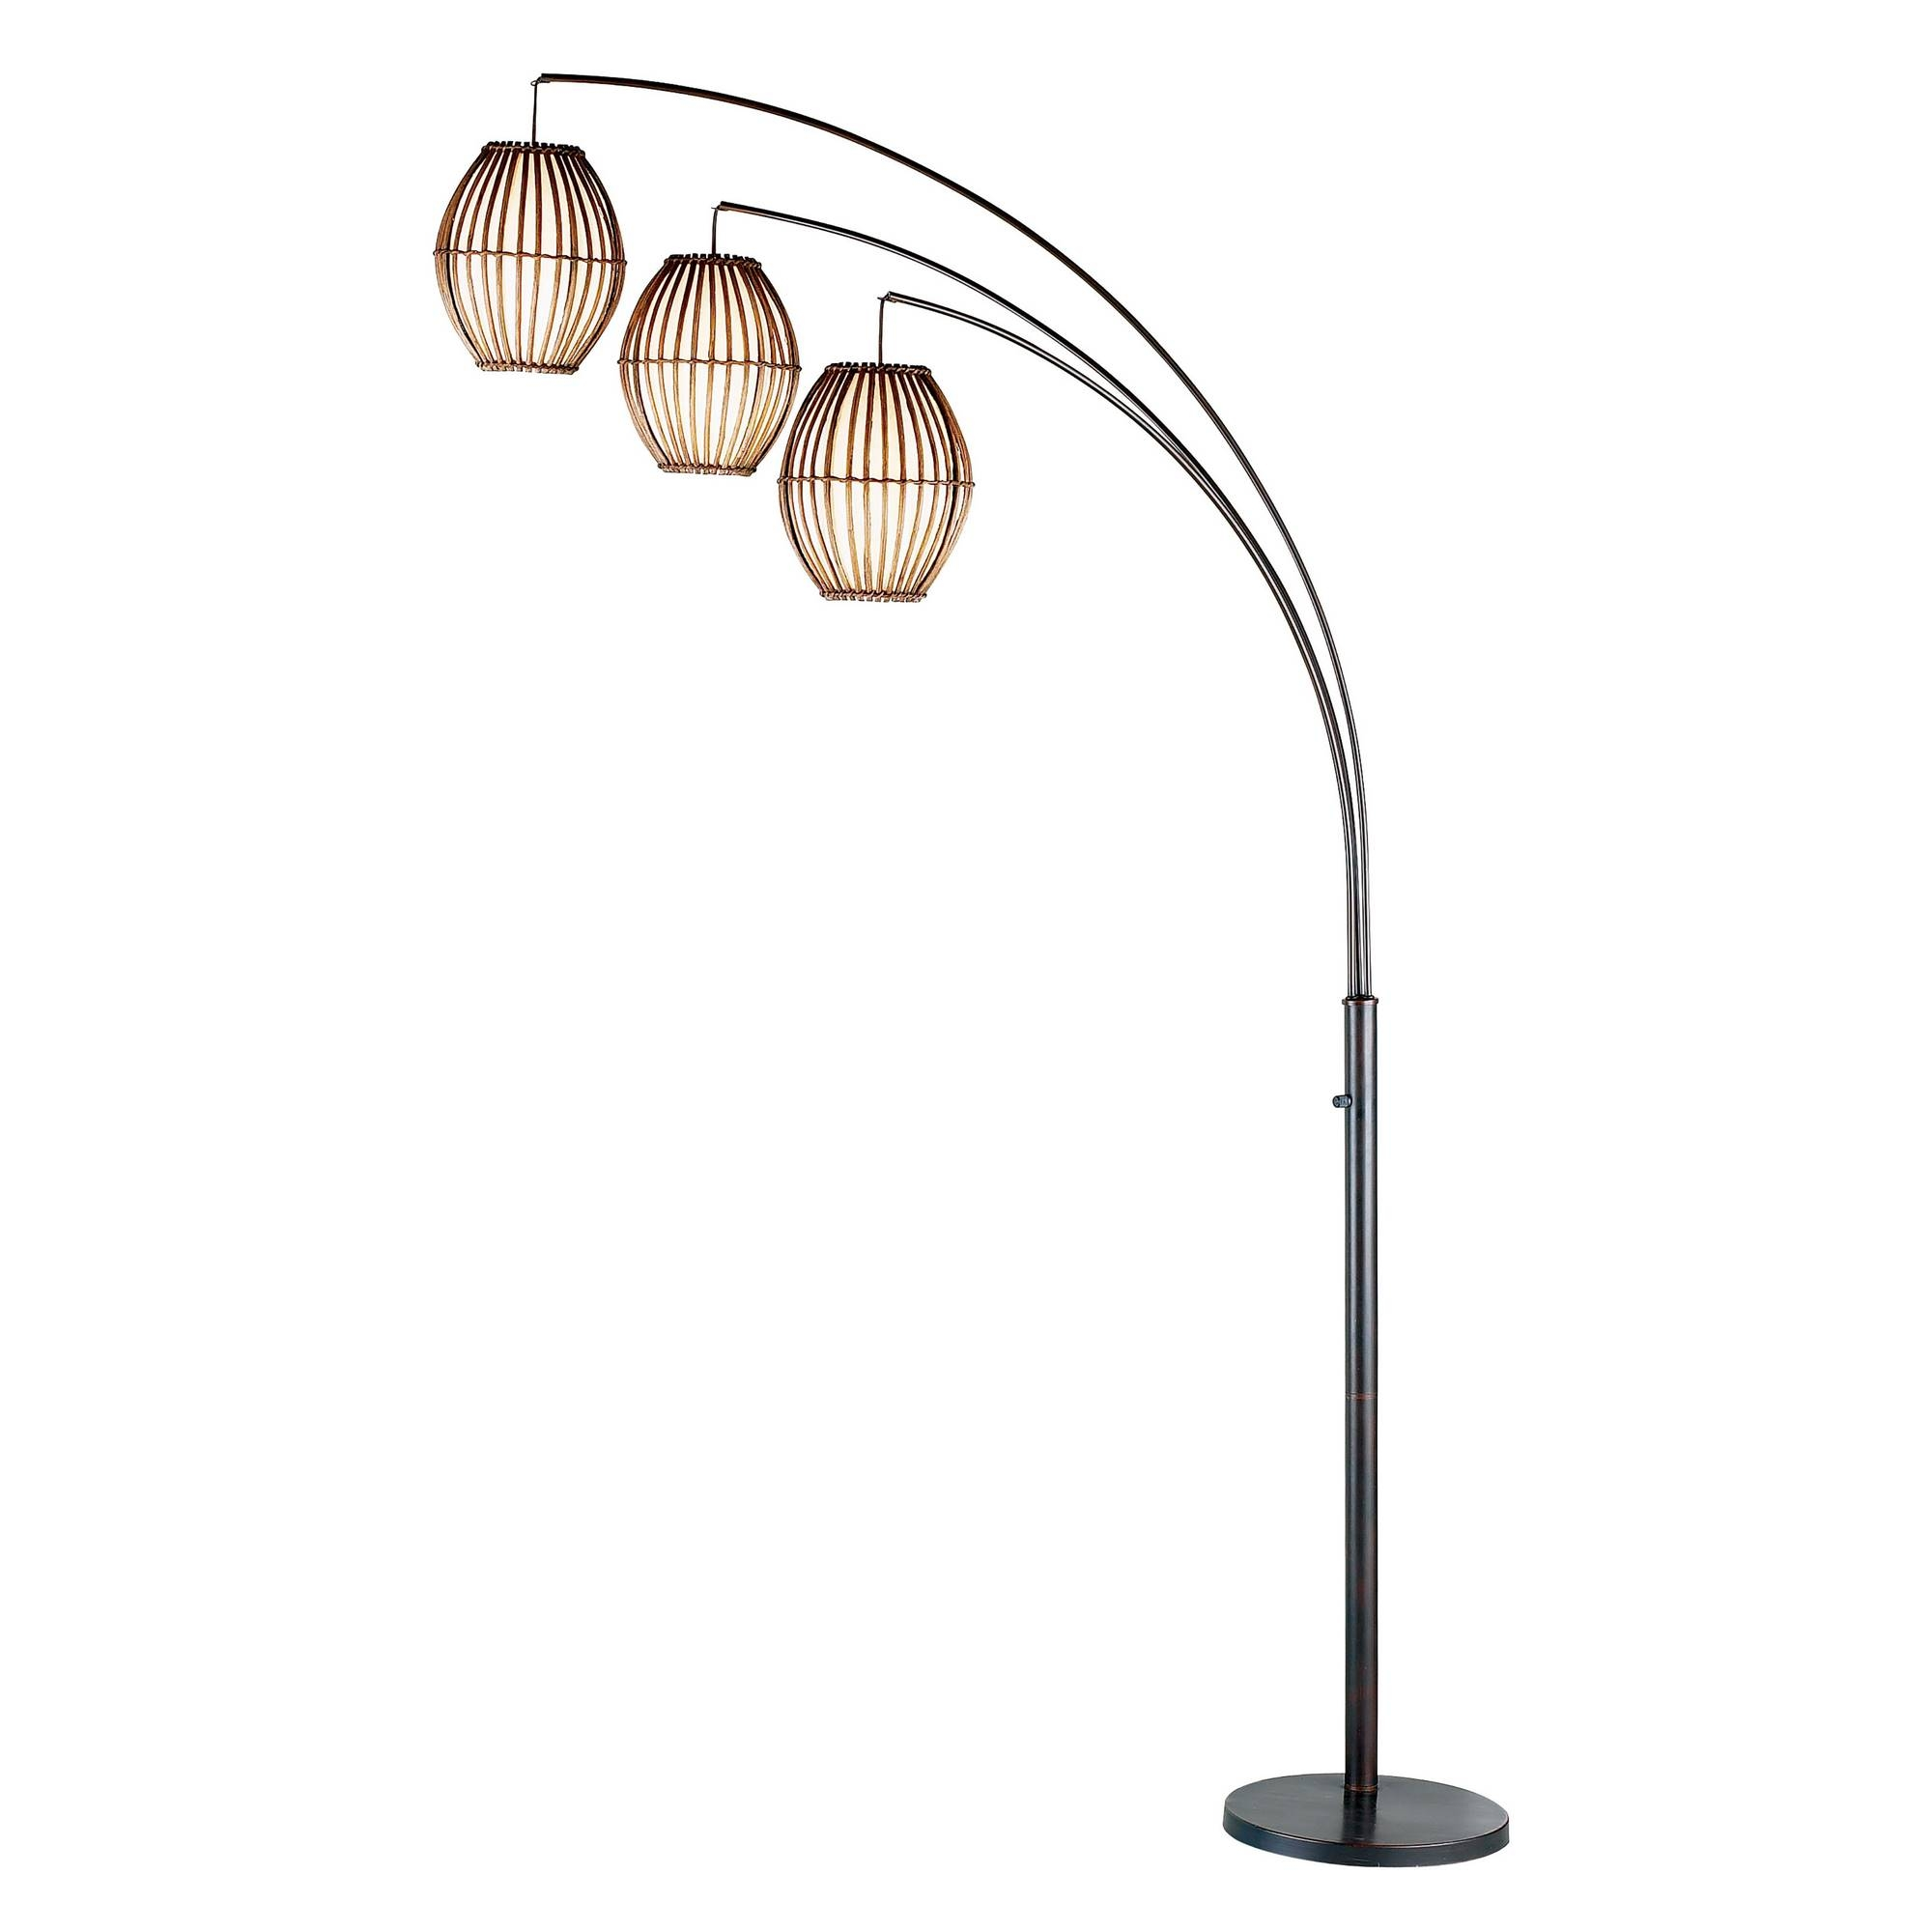 Adesso Maui Arched Floor Lamp